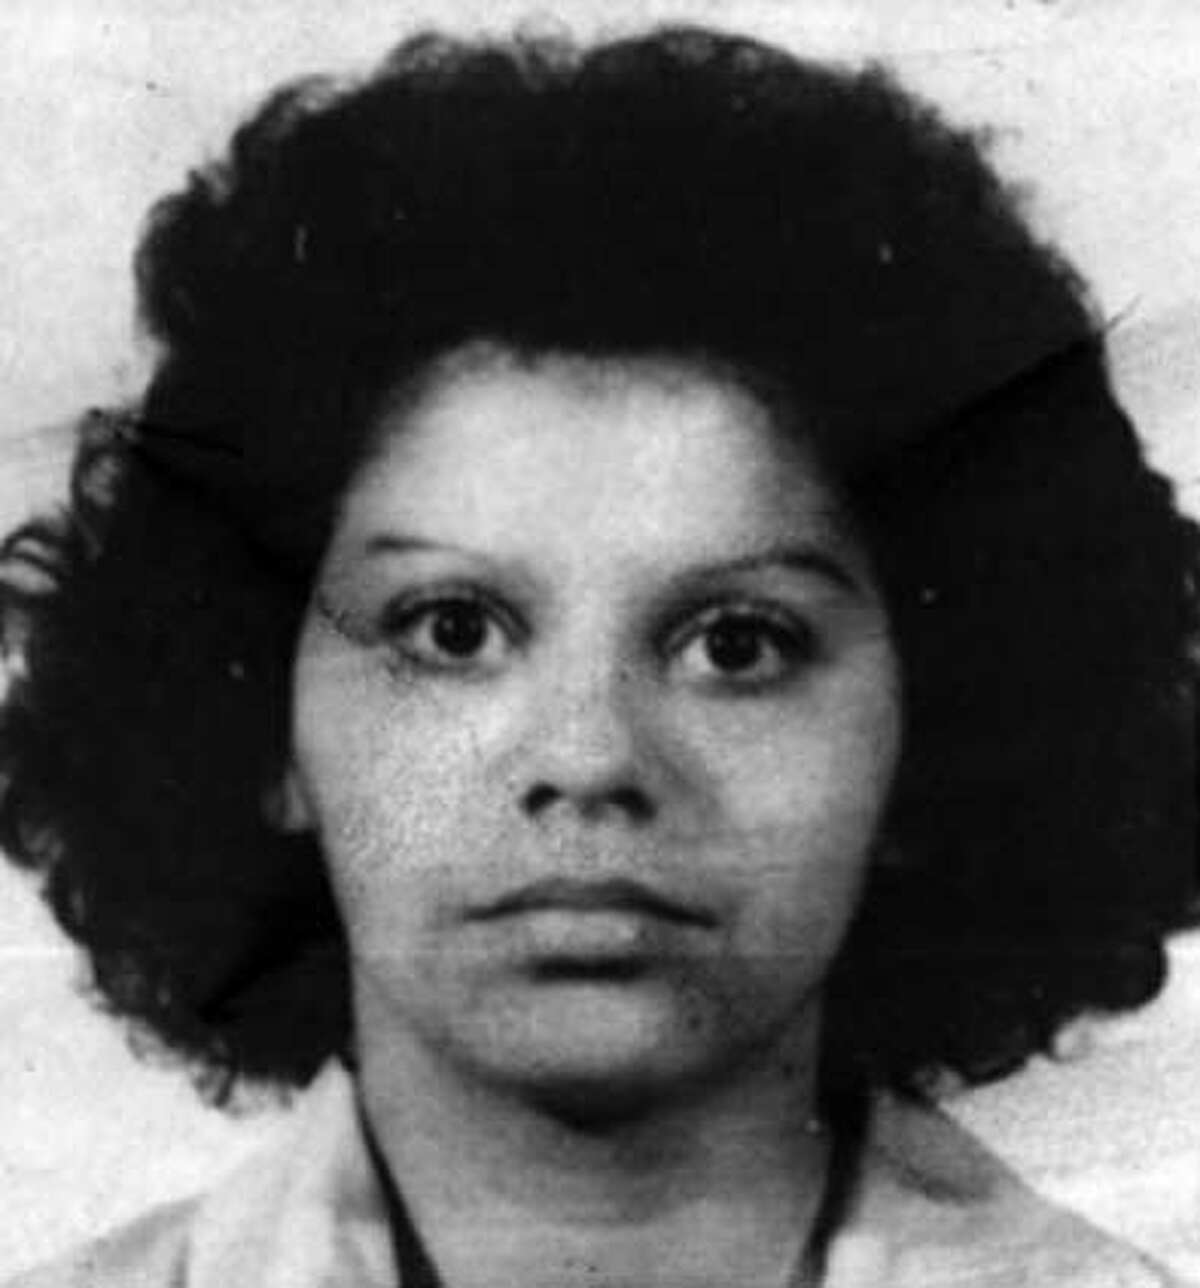 Rebecca Marrero, pictured in a booking photo, disappeared on Dec. 3, 1982, and was long believed to be a victim of the Green River Killer, Gary Ridgway. Her remains were discovered Tuesday in Auburn.